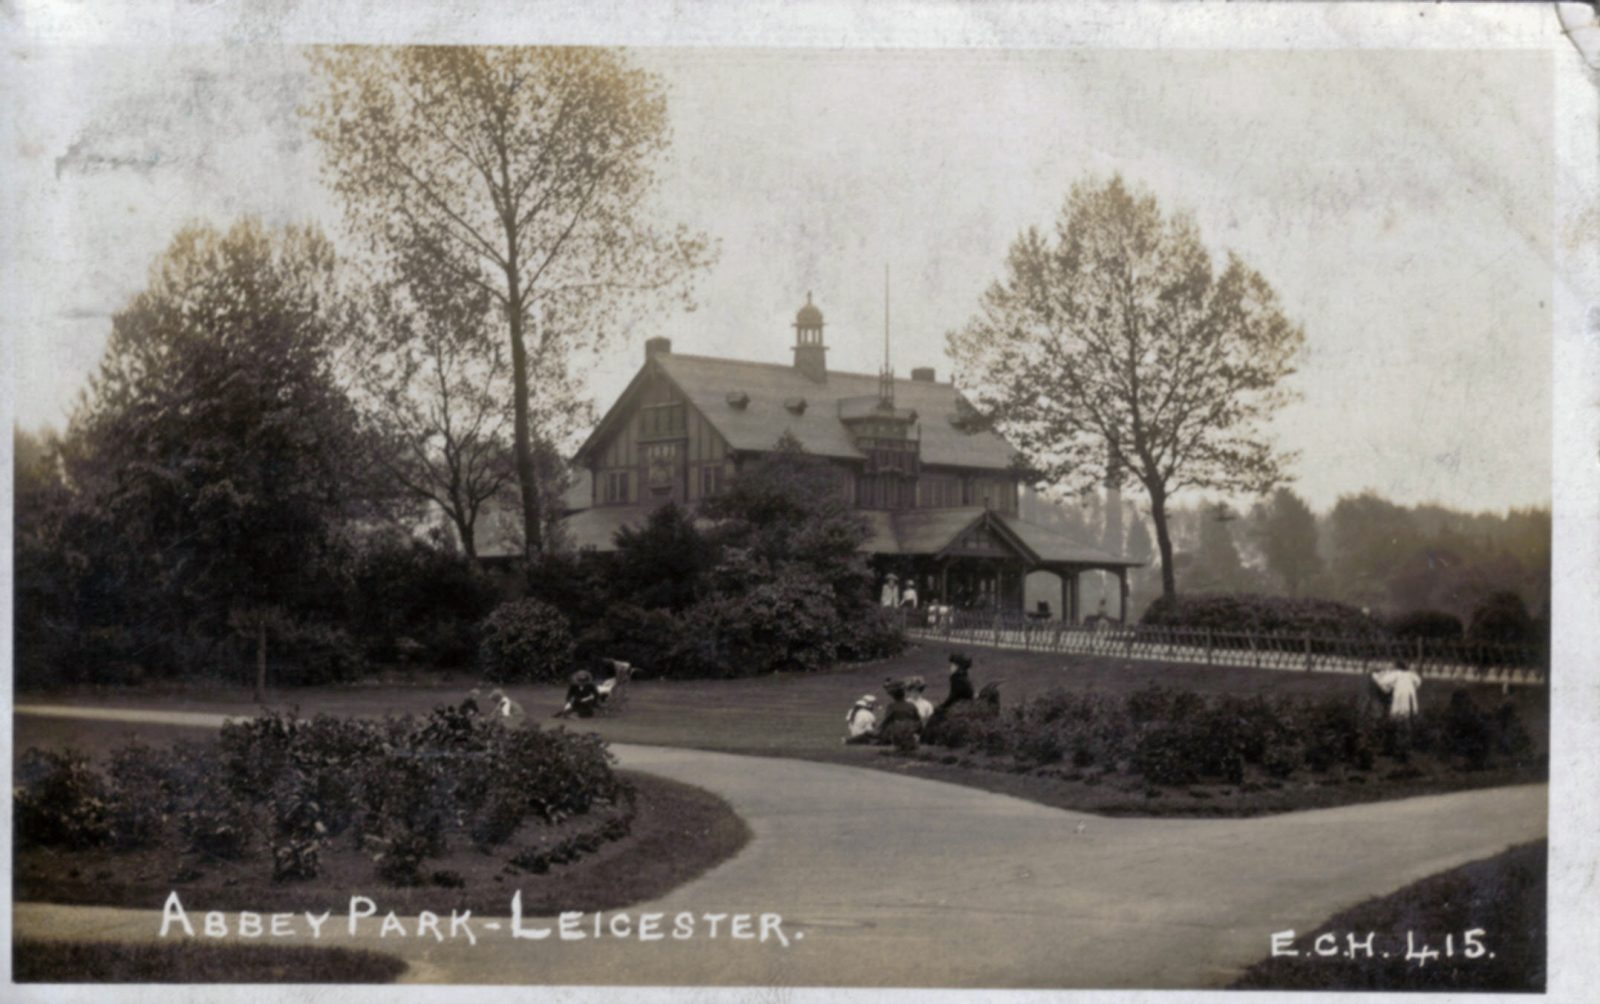 Abbey Park, Leicester. 1901-1920: The Pavilion, formal bedding with children playing. Franked 1914 (File:1268)